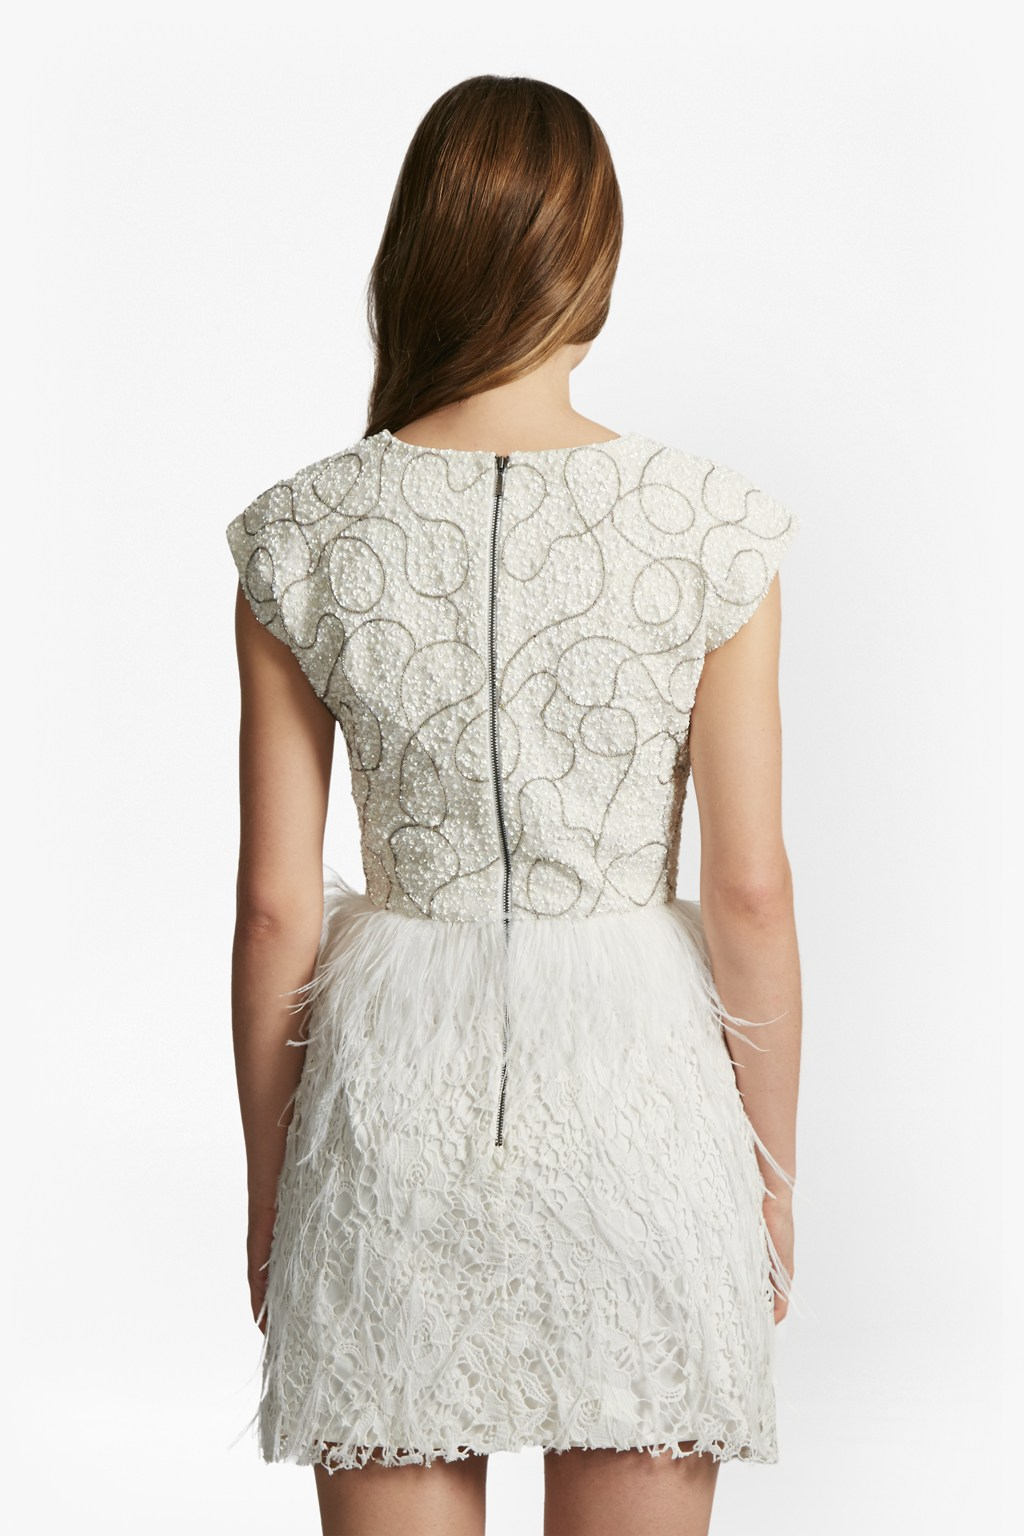 d3a365d6054 Snow Spell Feather Beaded Dress. loading images... loading images.